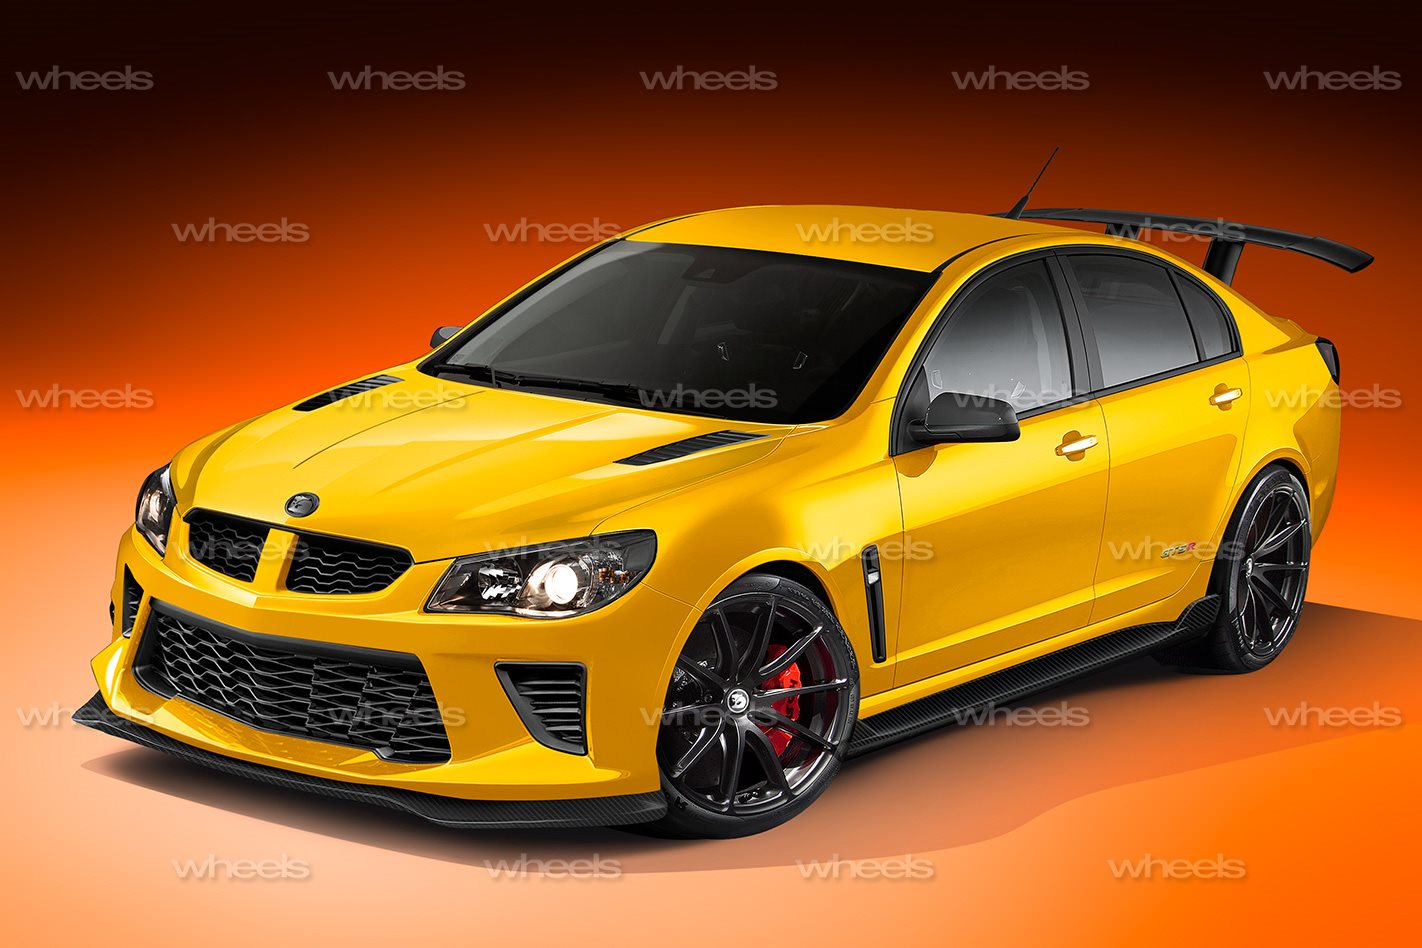 Hsv Gts R Engine Confirmed